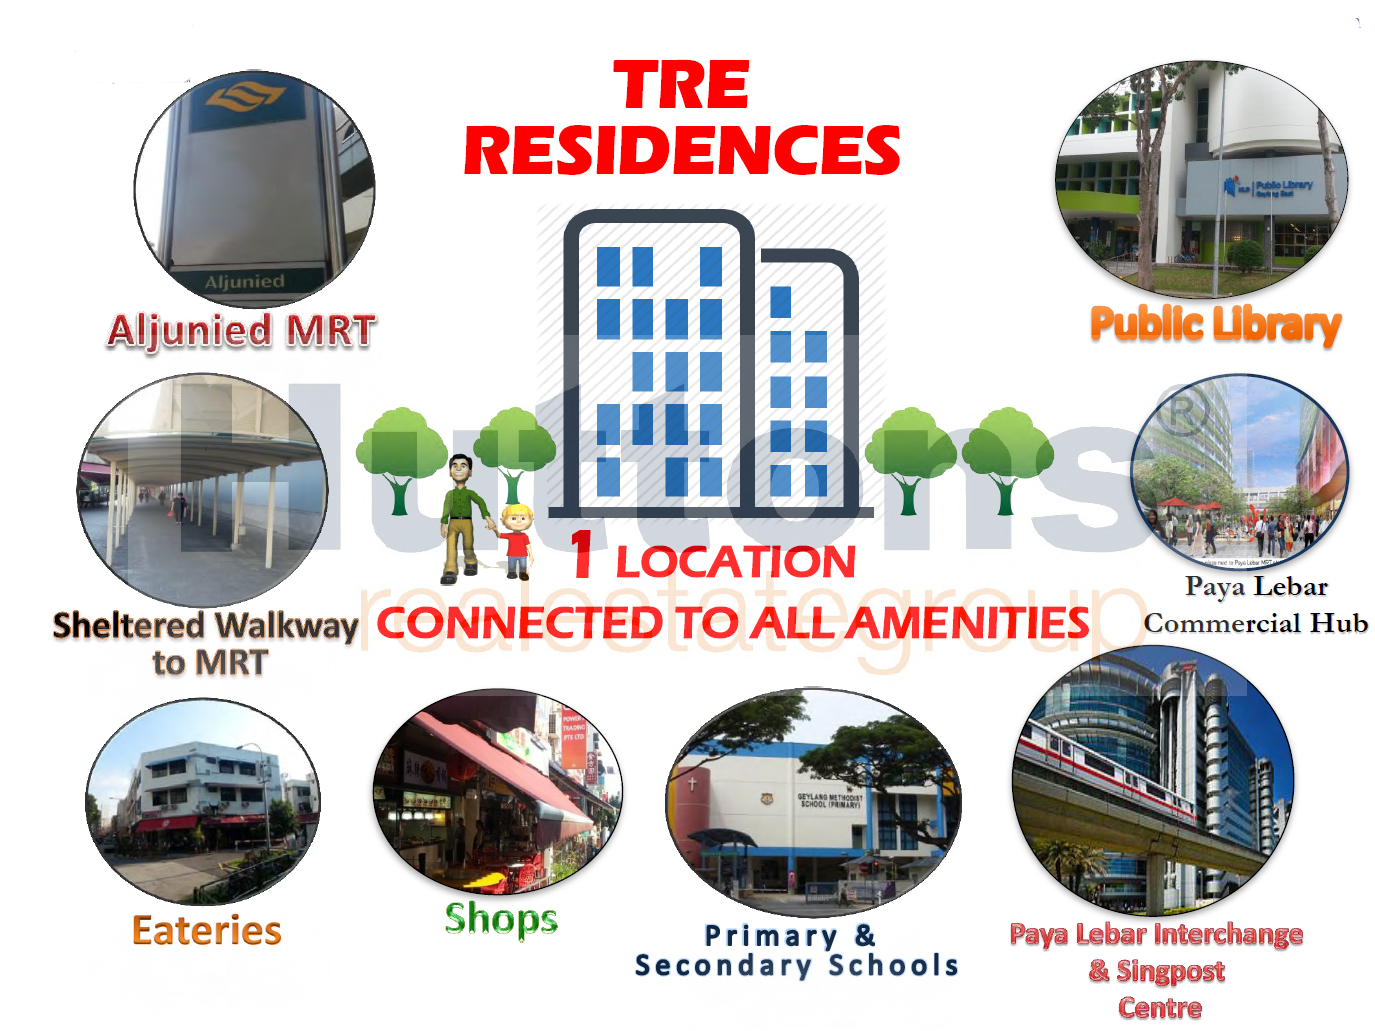 Tre-Residences-Amenities